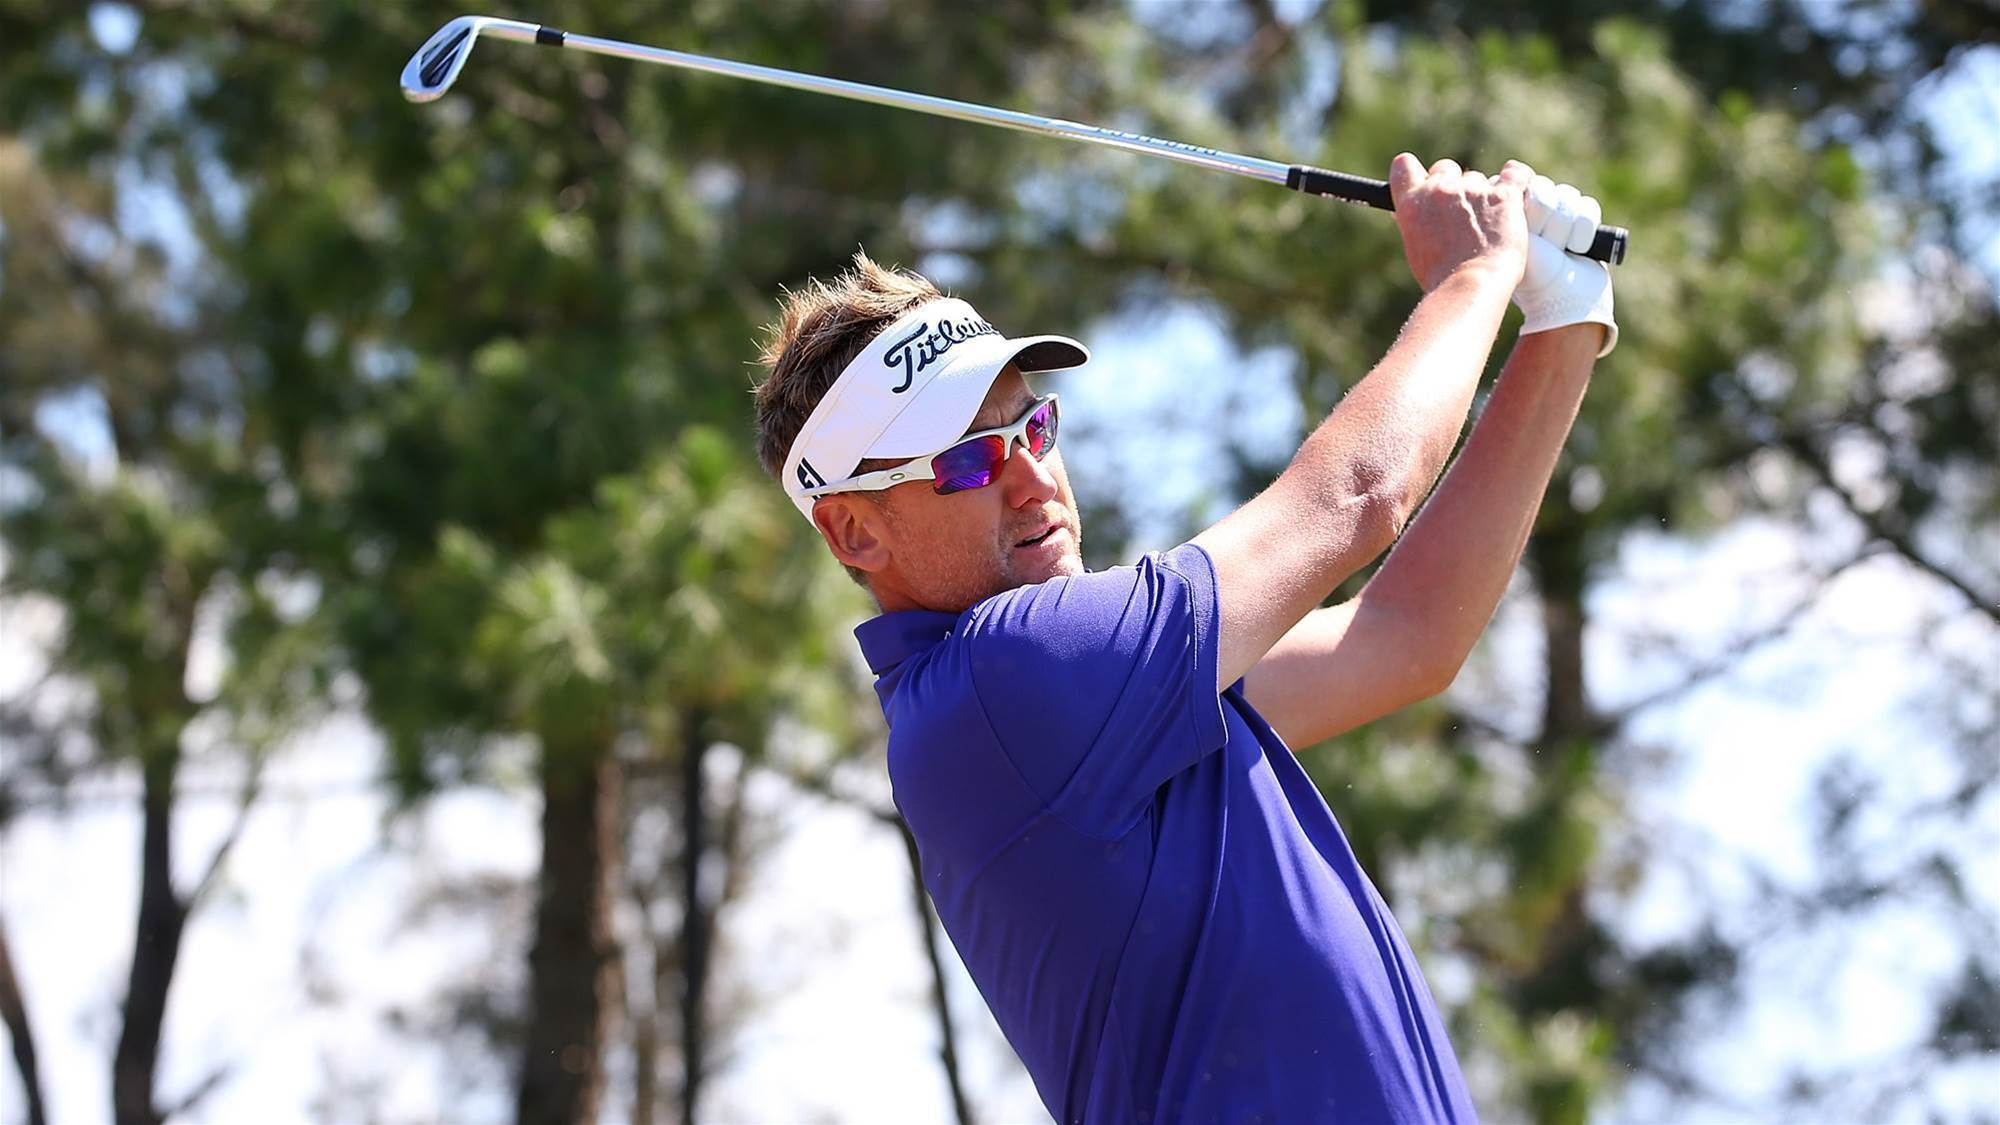 AUS PGA: Poulter fit and raring to go